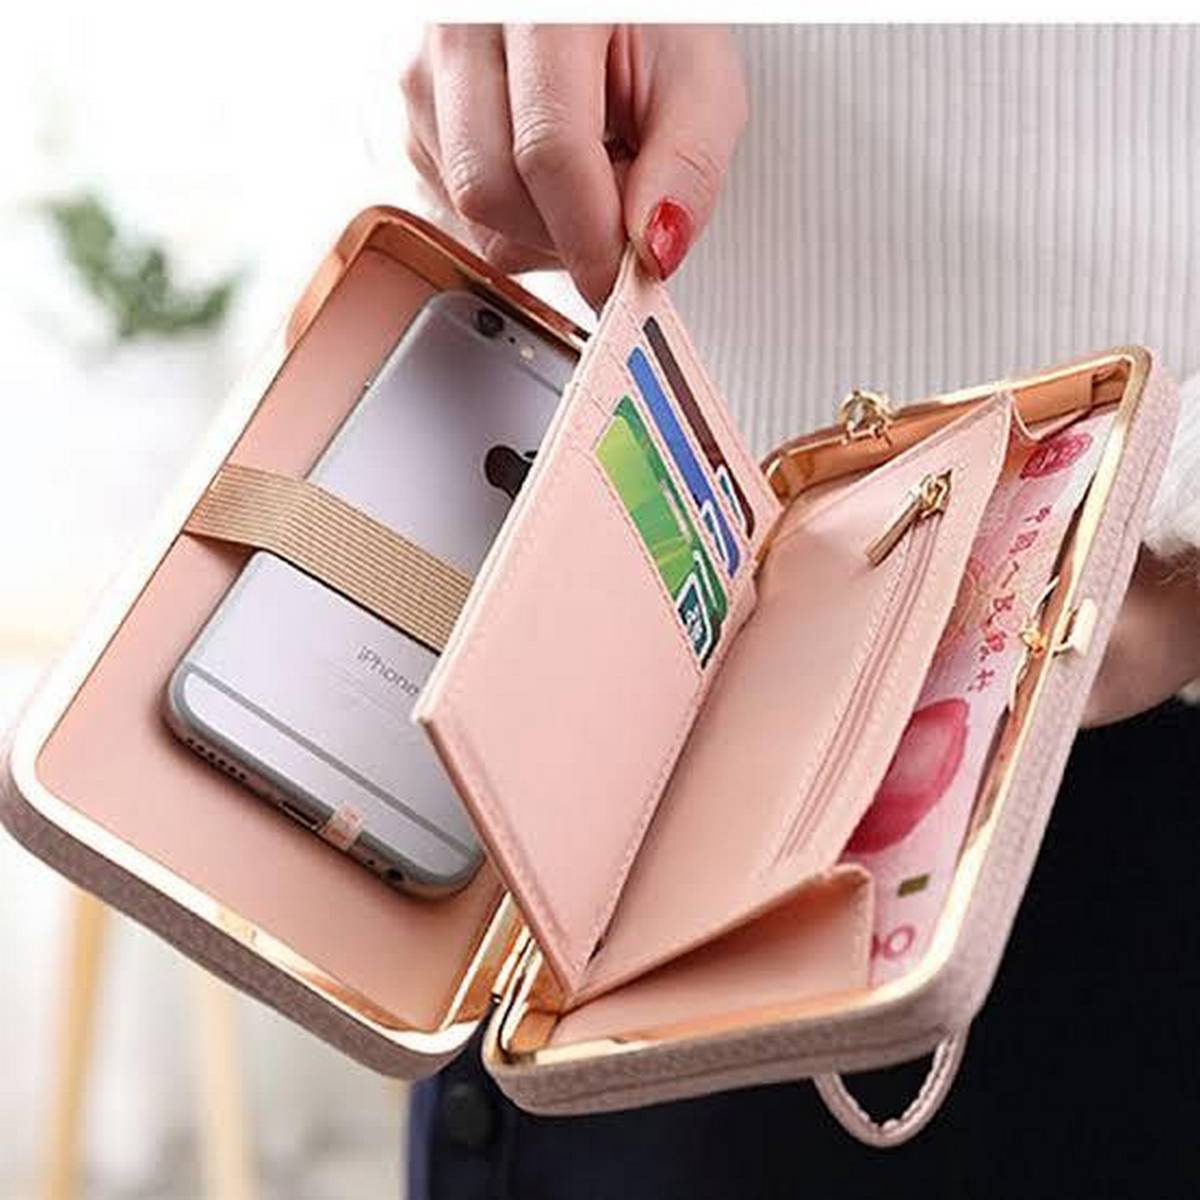 2020 Purse wallet female big capacity brand card holders cellphone pocket gifts for women money bag clutch wristlet bags